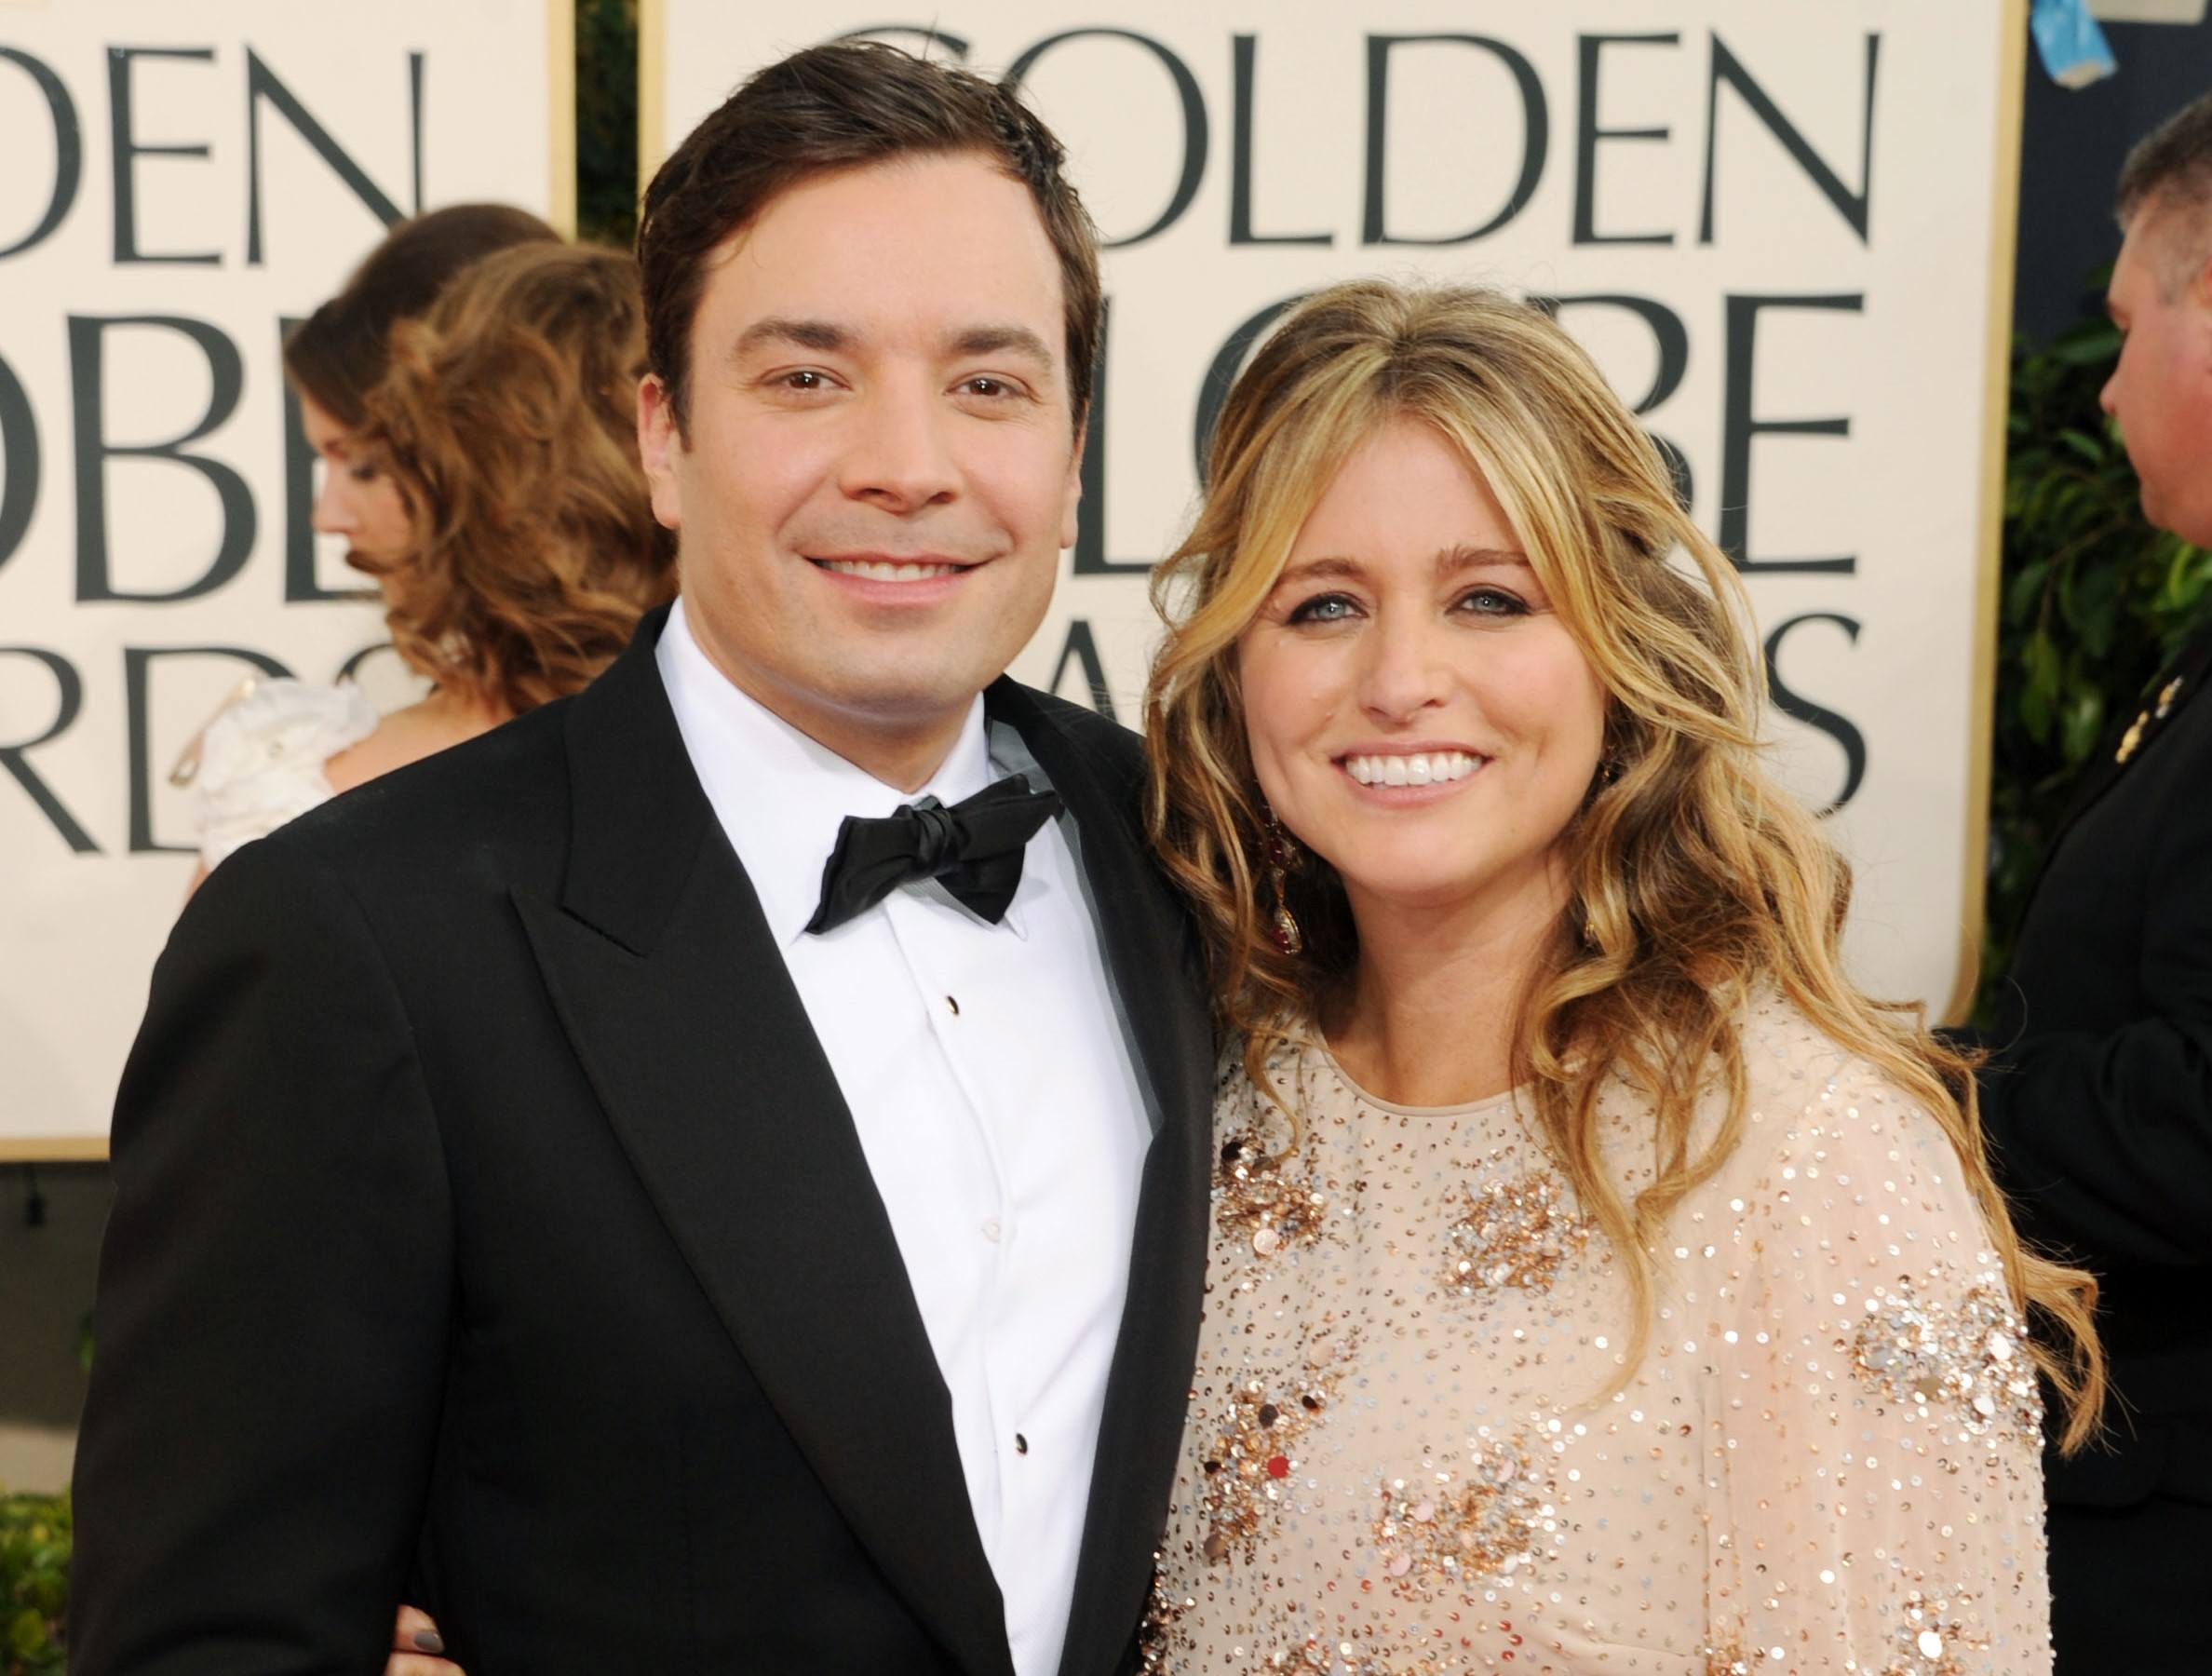 Jimmy Fallon and wife Nancy Juvonen